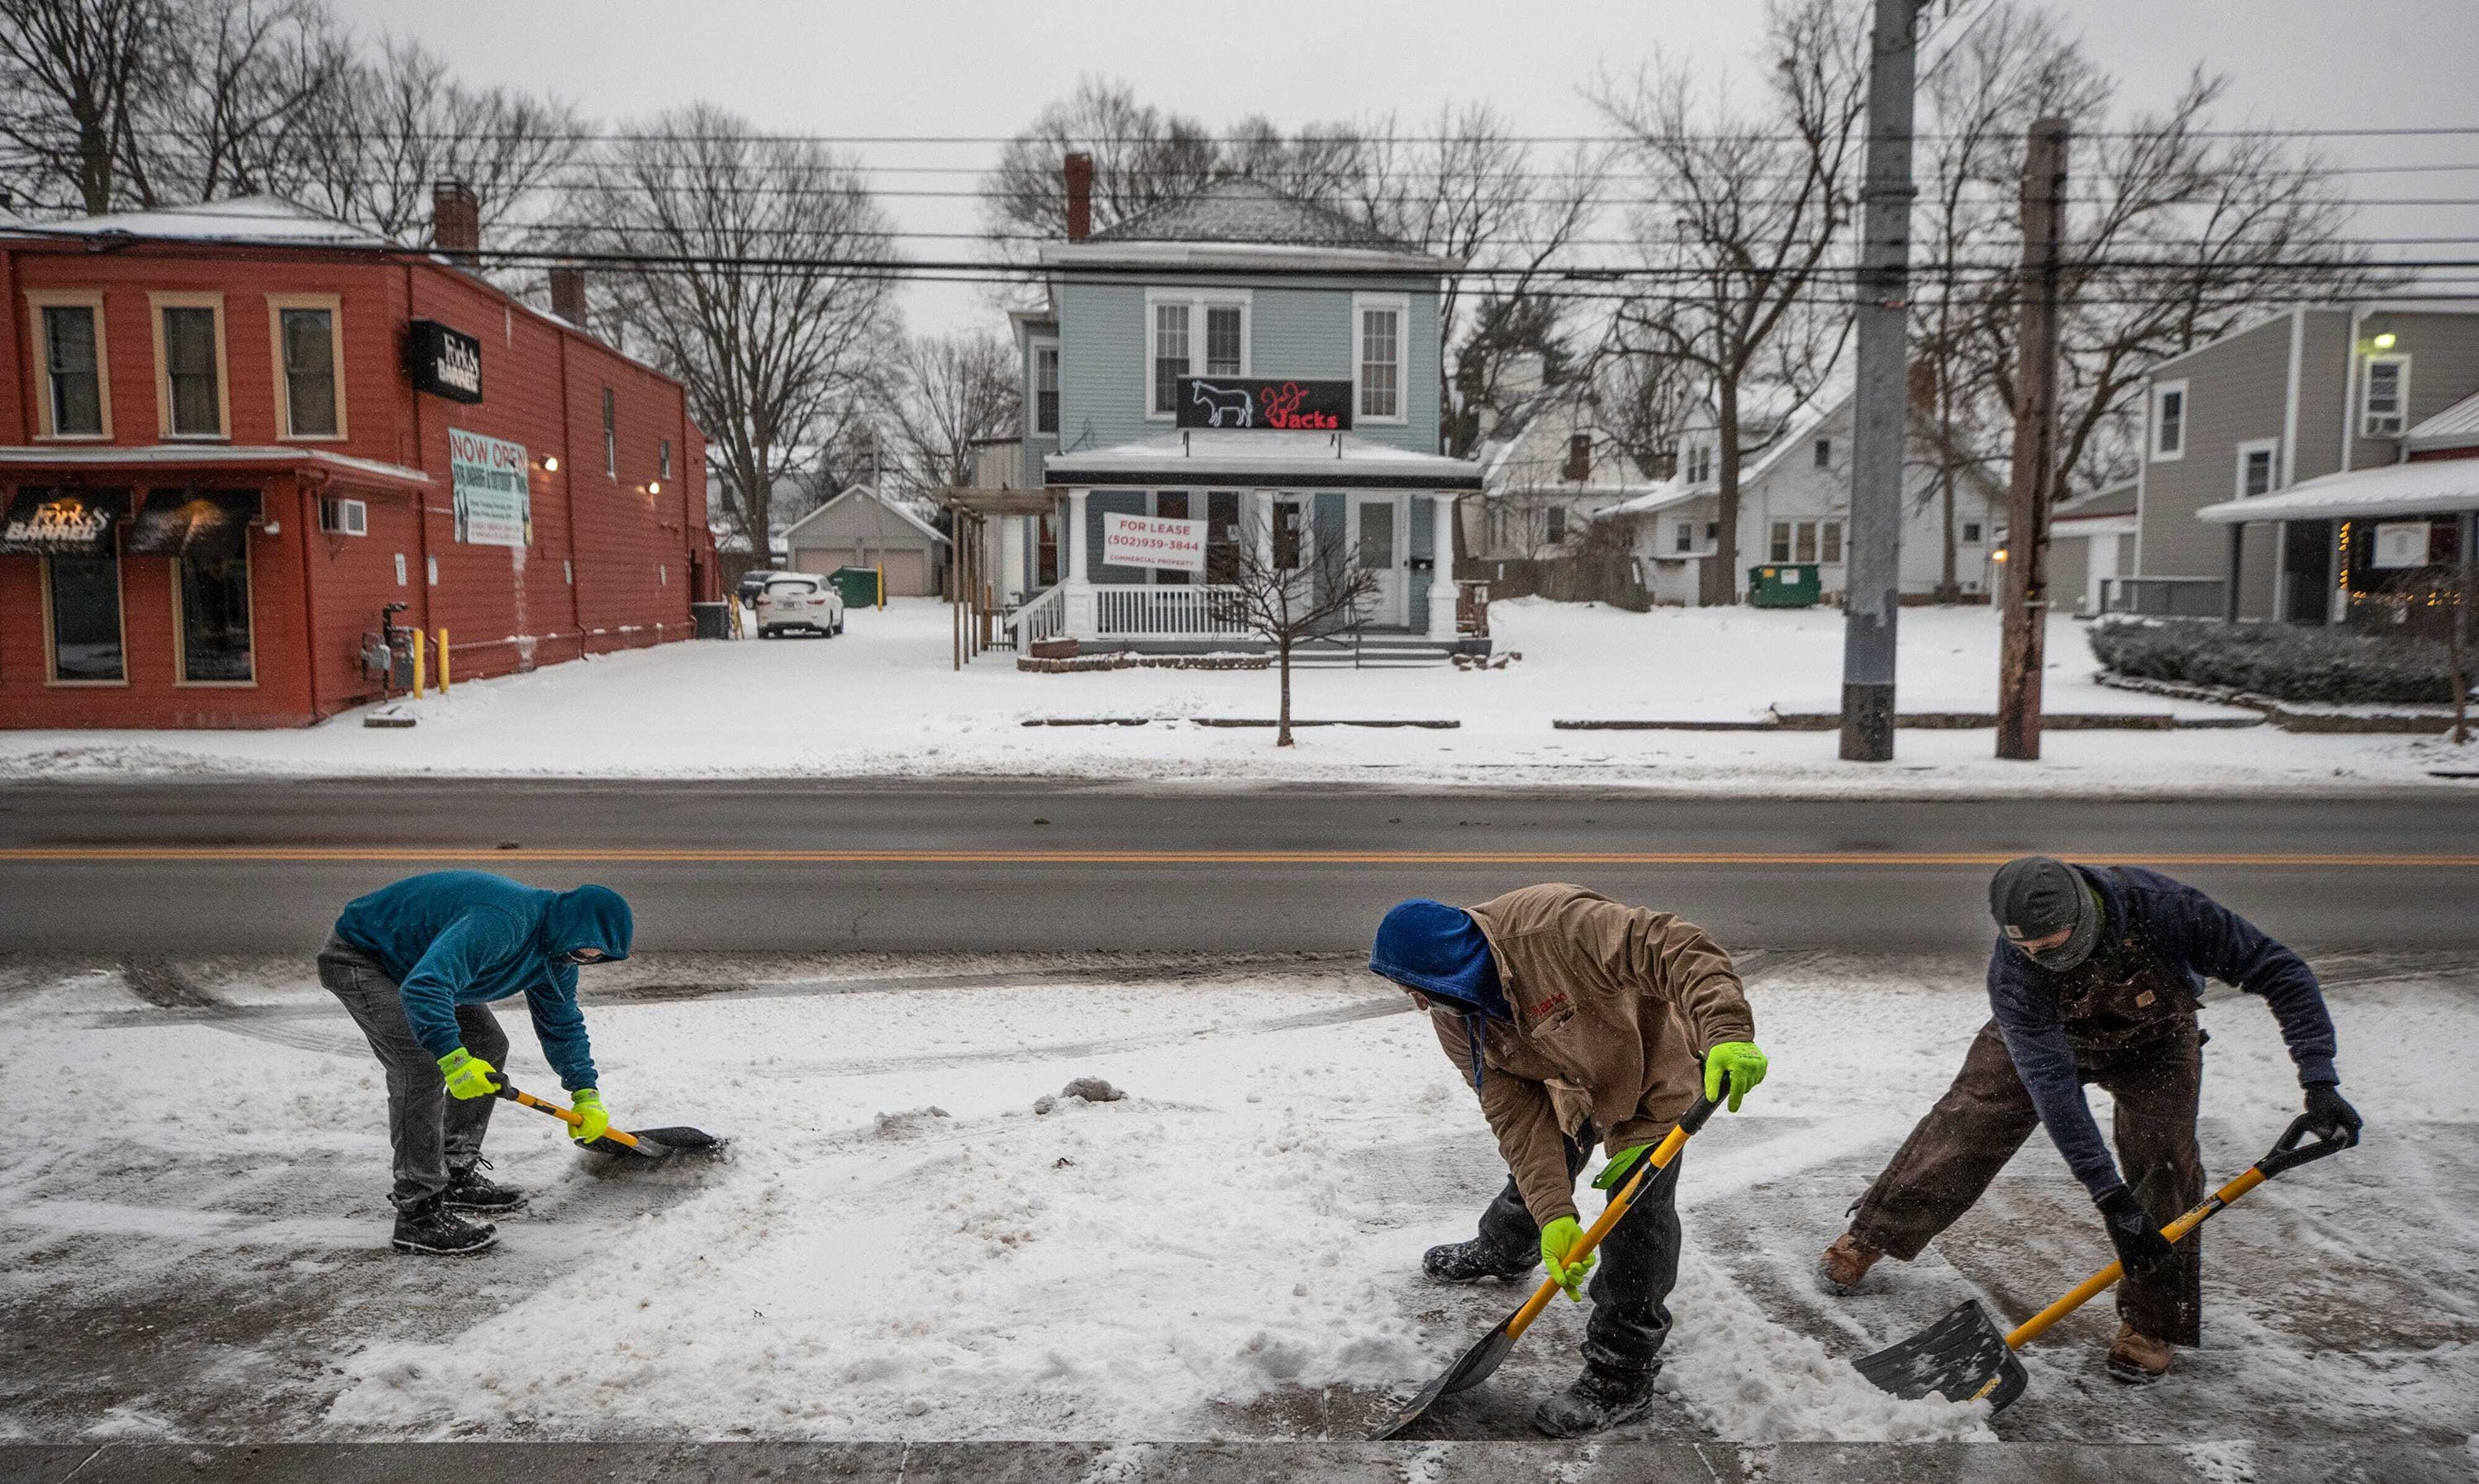 People shovel ice and snow from a winter storm in front of shops on Frankfort Avenue in Louisville, Kentucky, Monday February 15.